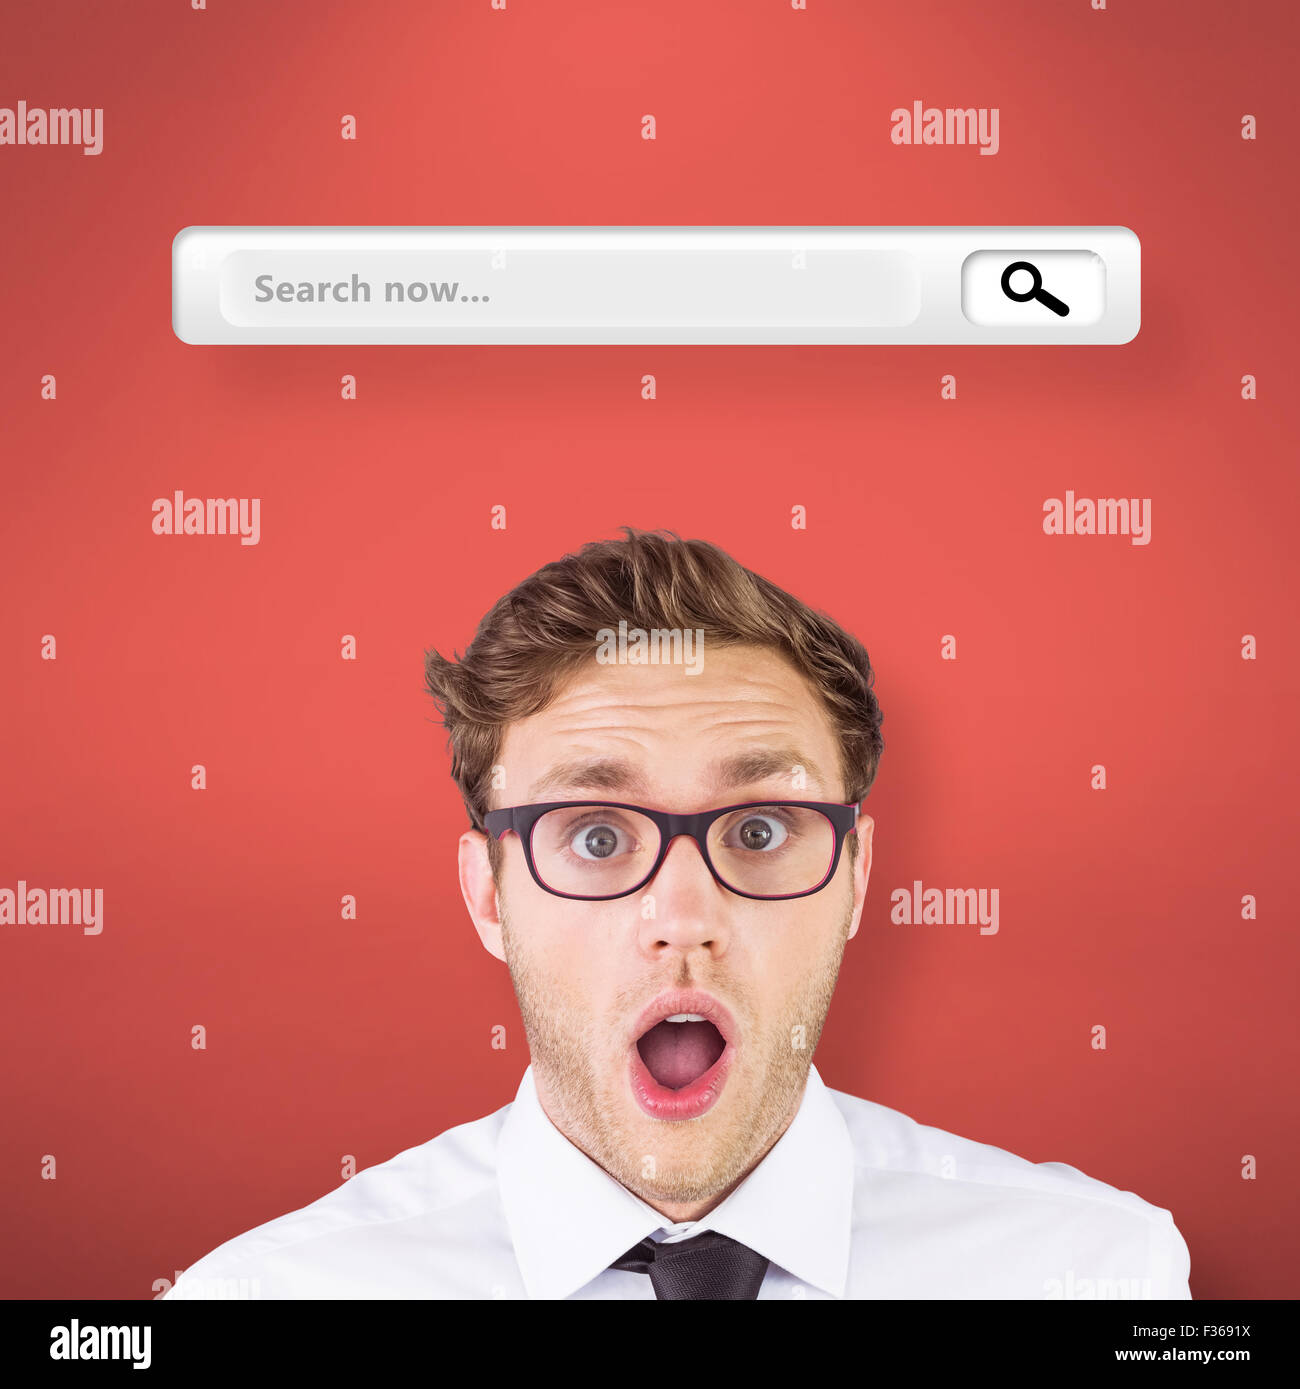 Composite image of geeky businessman looking at camera - Stock Image